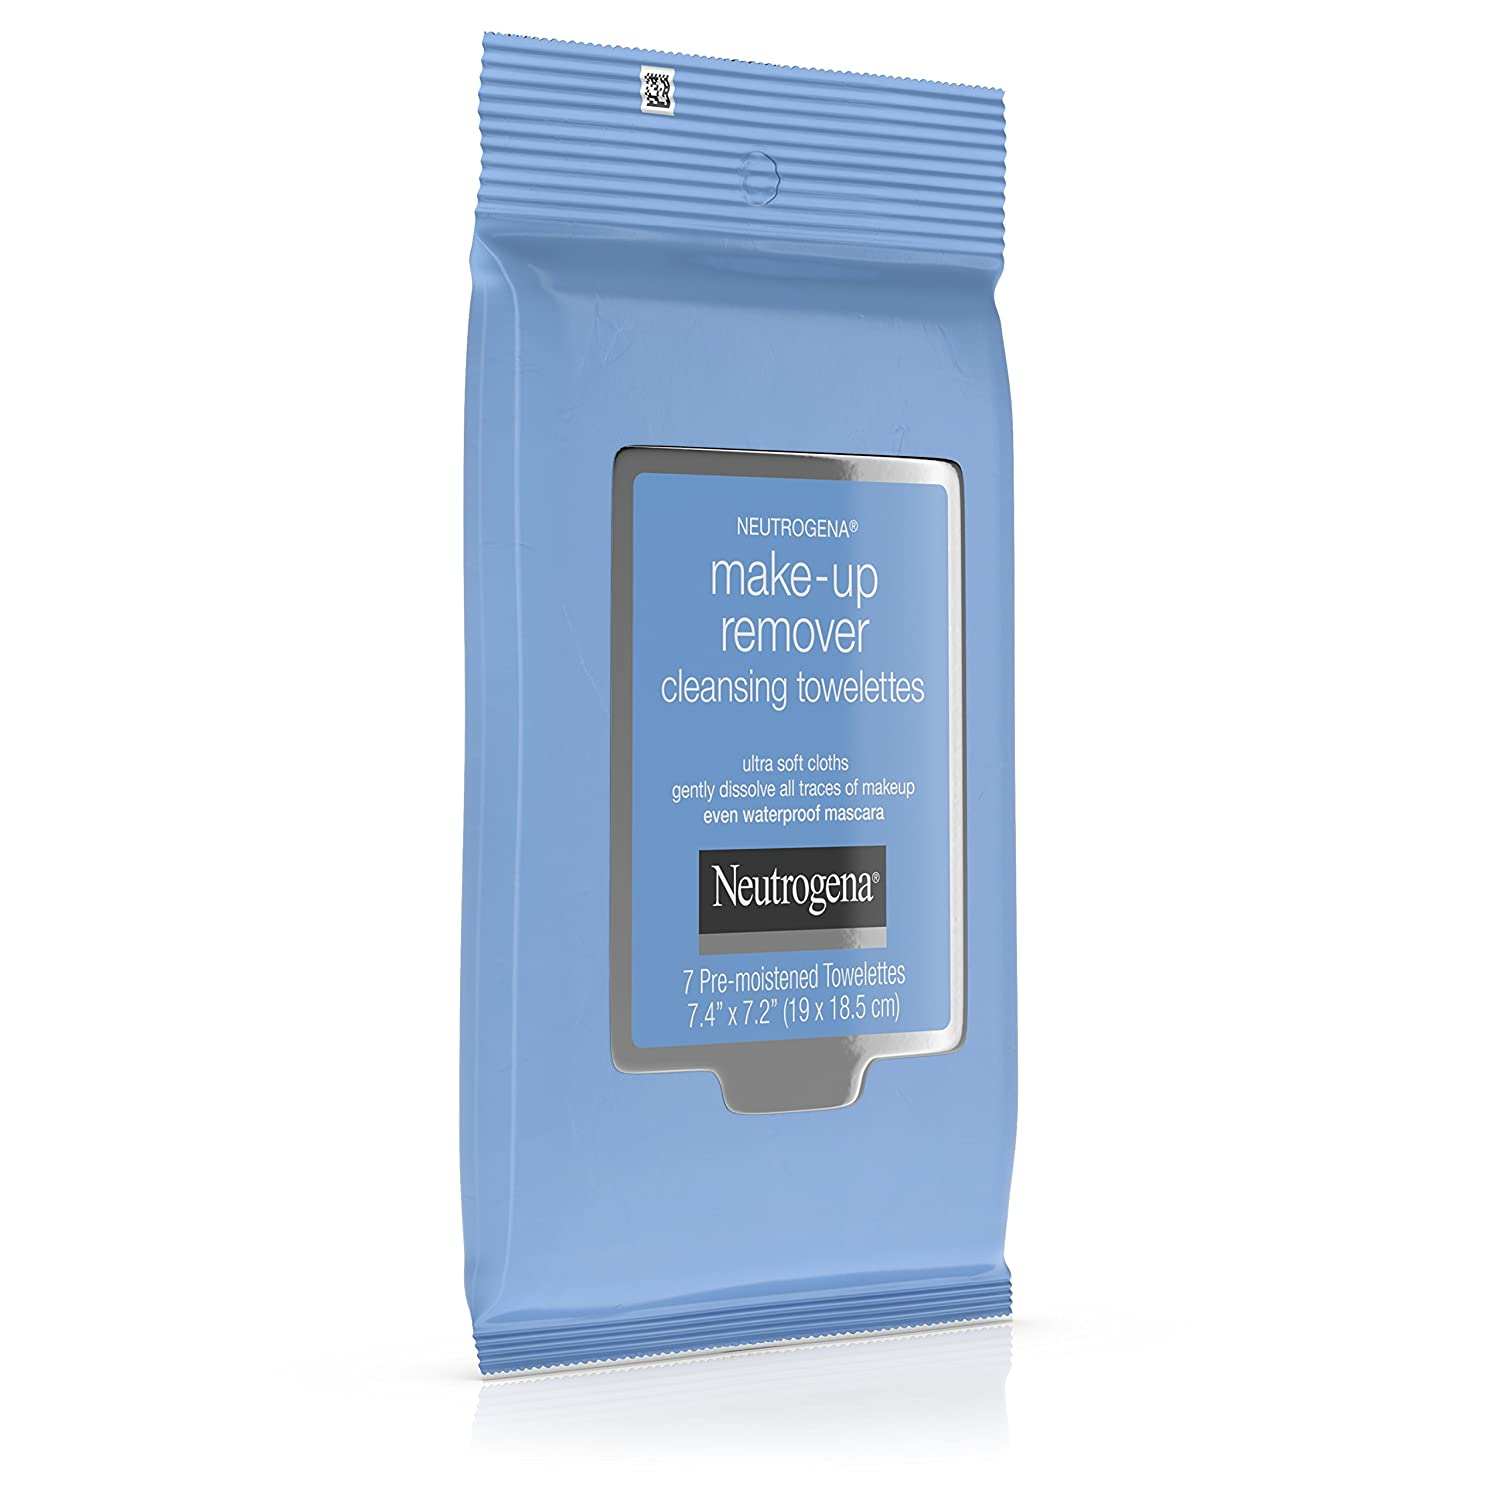 Amazon.com: Neutrogena Makeup Remover Cleansing Towelettes, 7 Count: Beauty